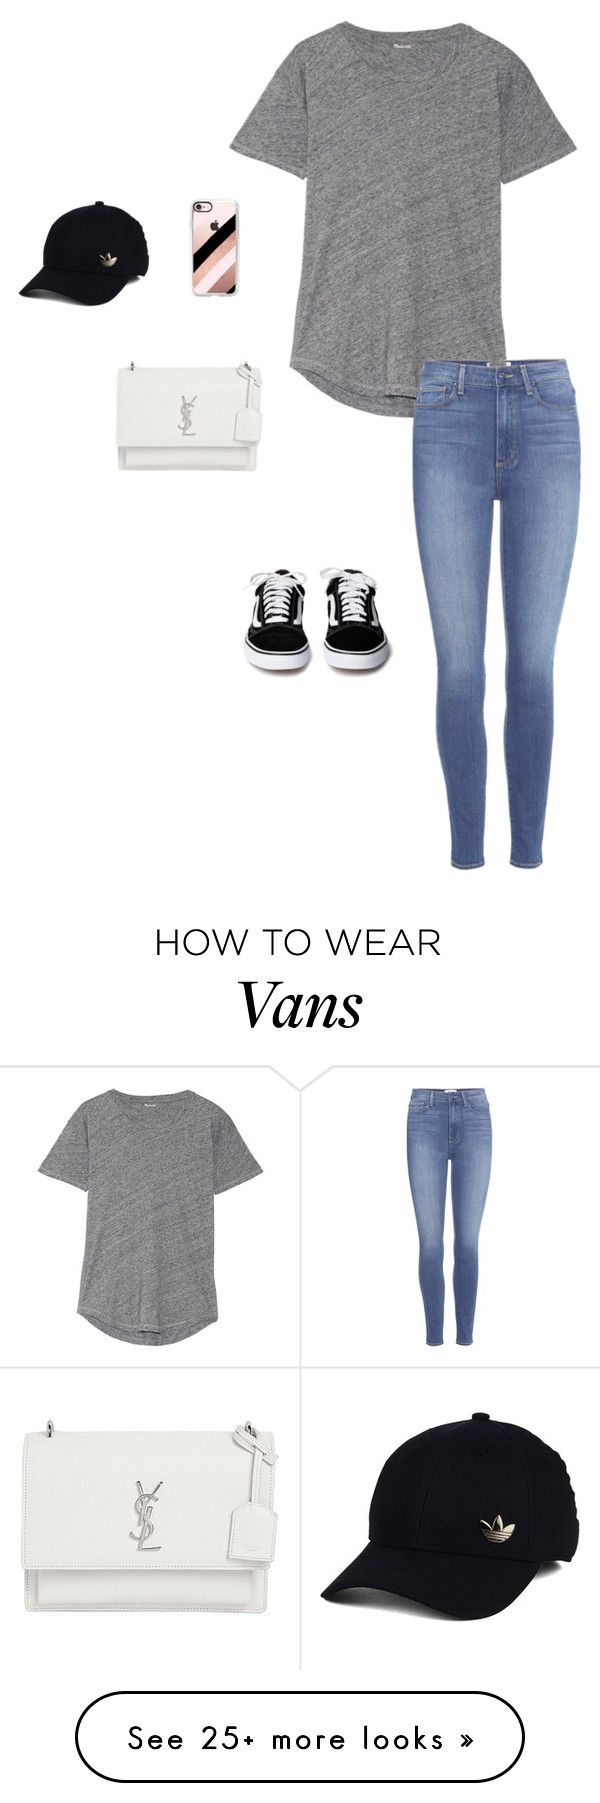 """How to wear vans"" by sydneyalllen1025 on Polyvore featuring Madewell, Paige Denim, Casetify, Yves Saint Laurent and adidas"